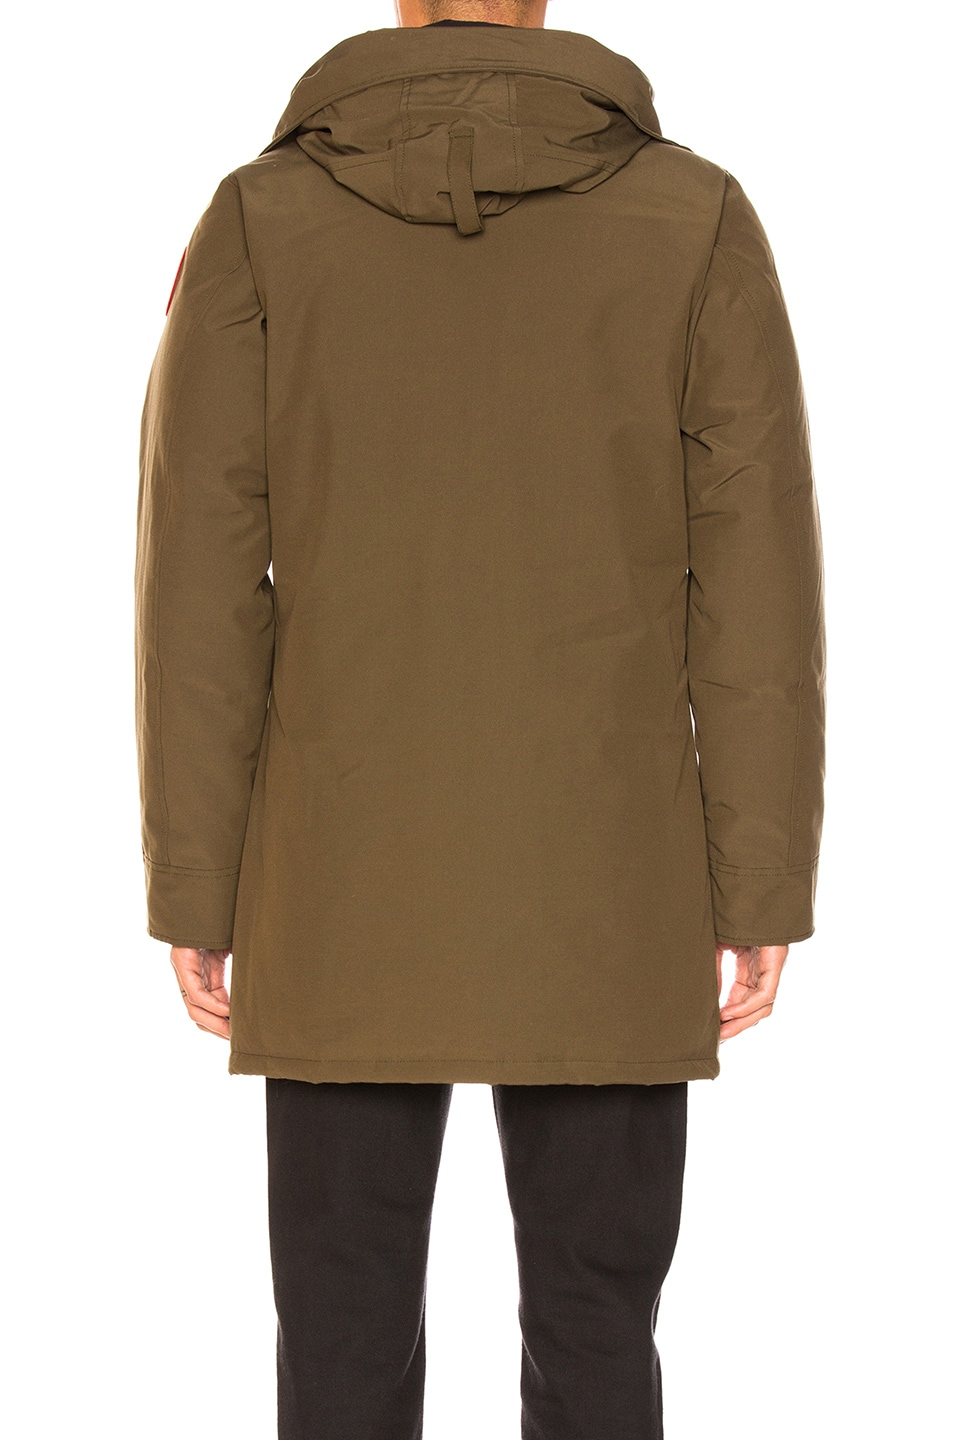 Image 5 of Canada Goose Langford Coyote Fur Trim Parka in Military Green